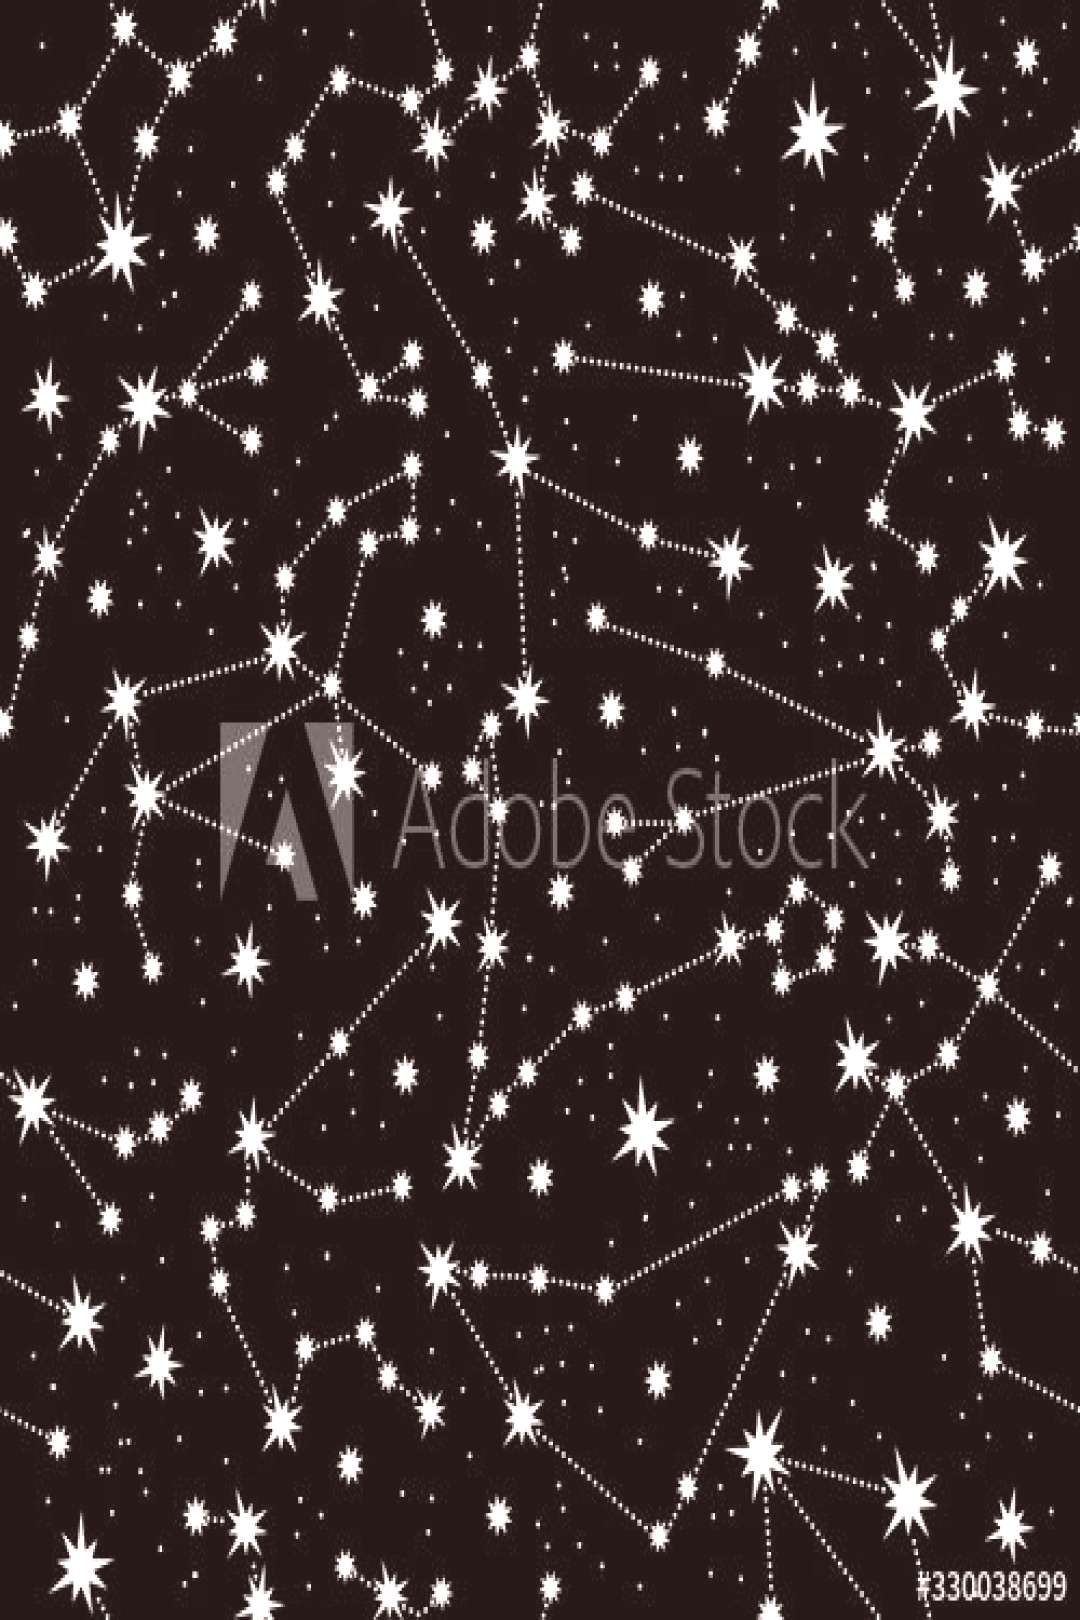 Zodiac constellation seamless pattern. White constellations and stars on a black background. Horosc